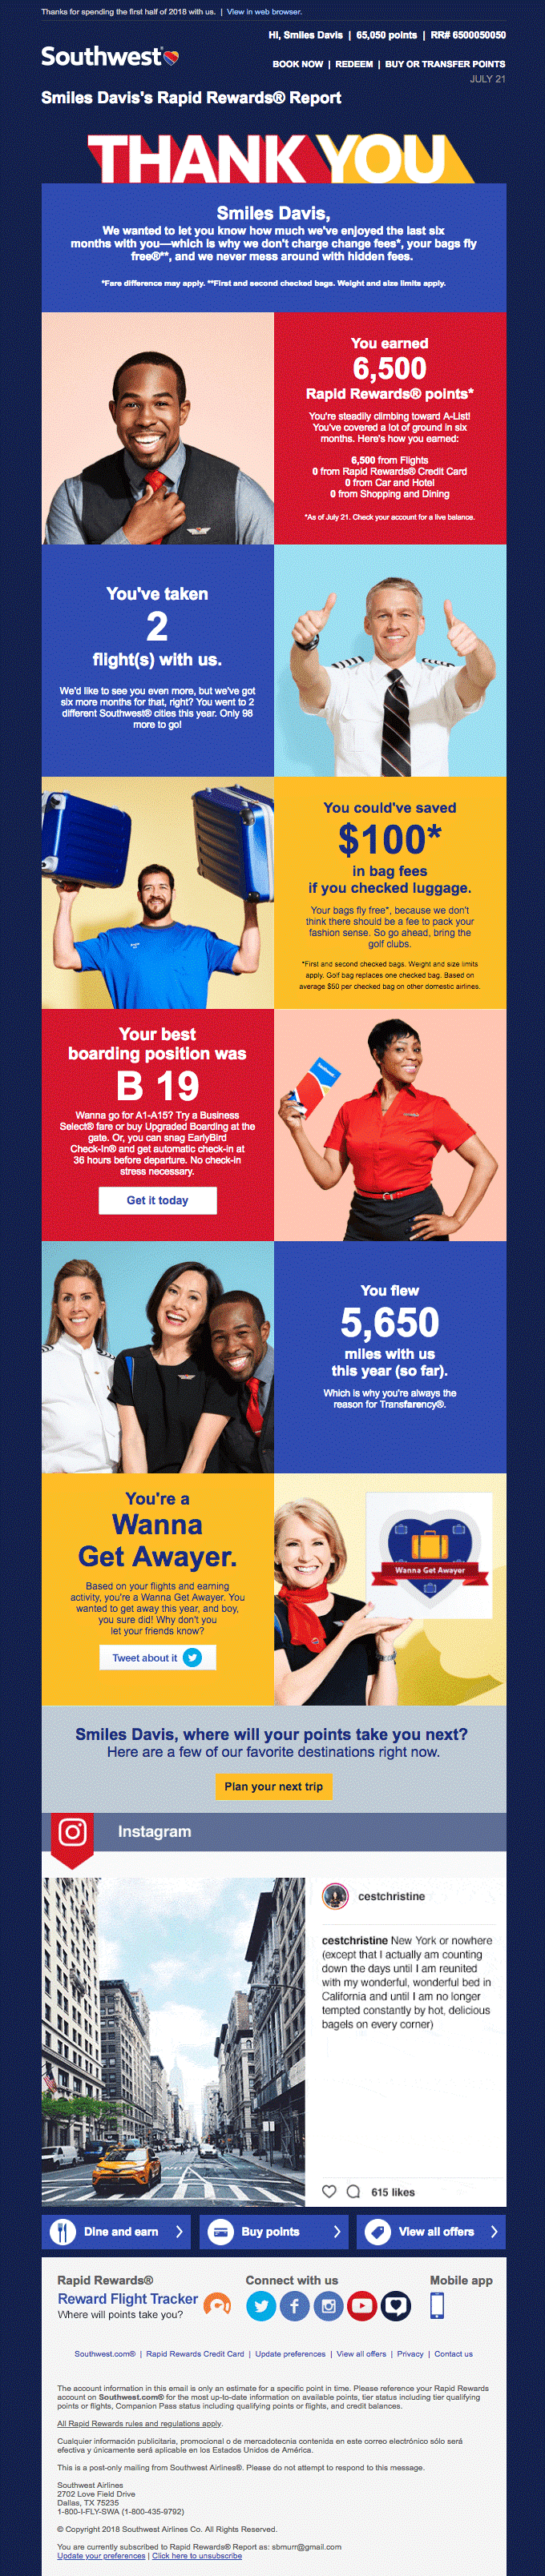 southwest airlines email